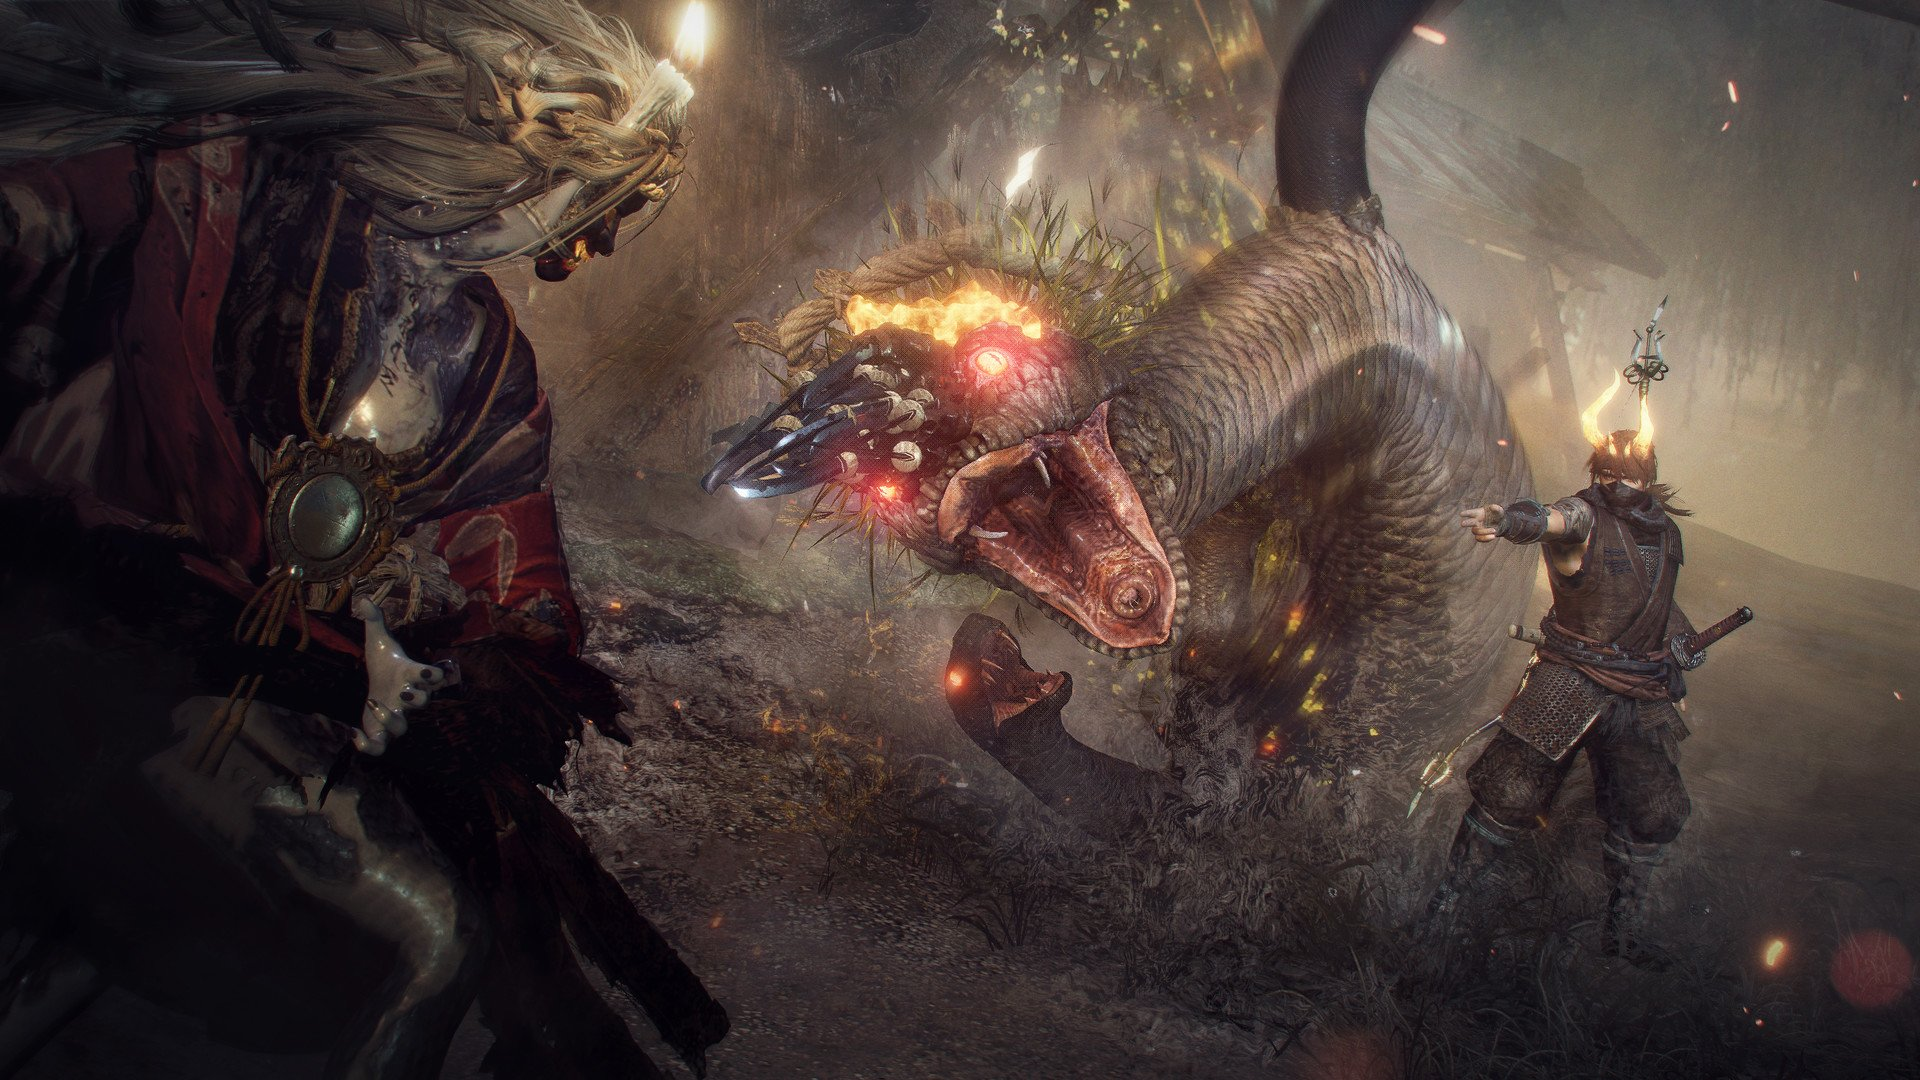 What was the toughest part of the Nioh remaster process? '120 FPS,' says Team Ninja screenshot